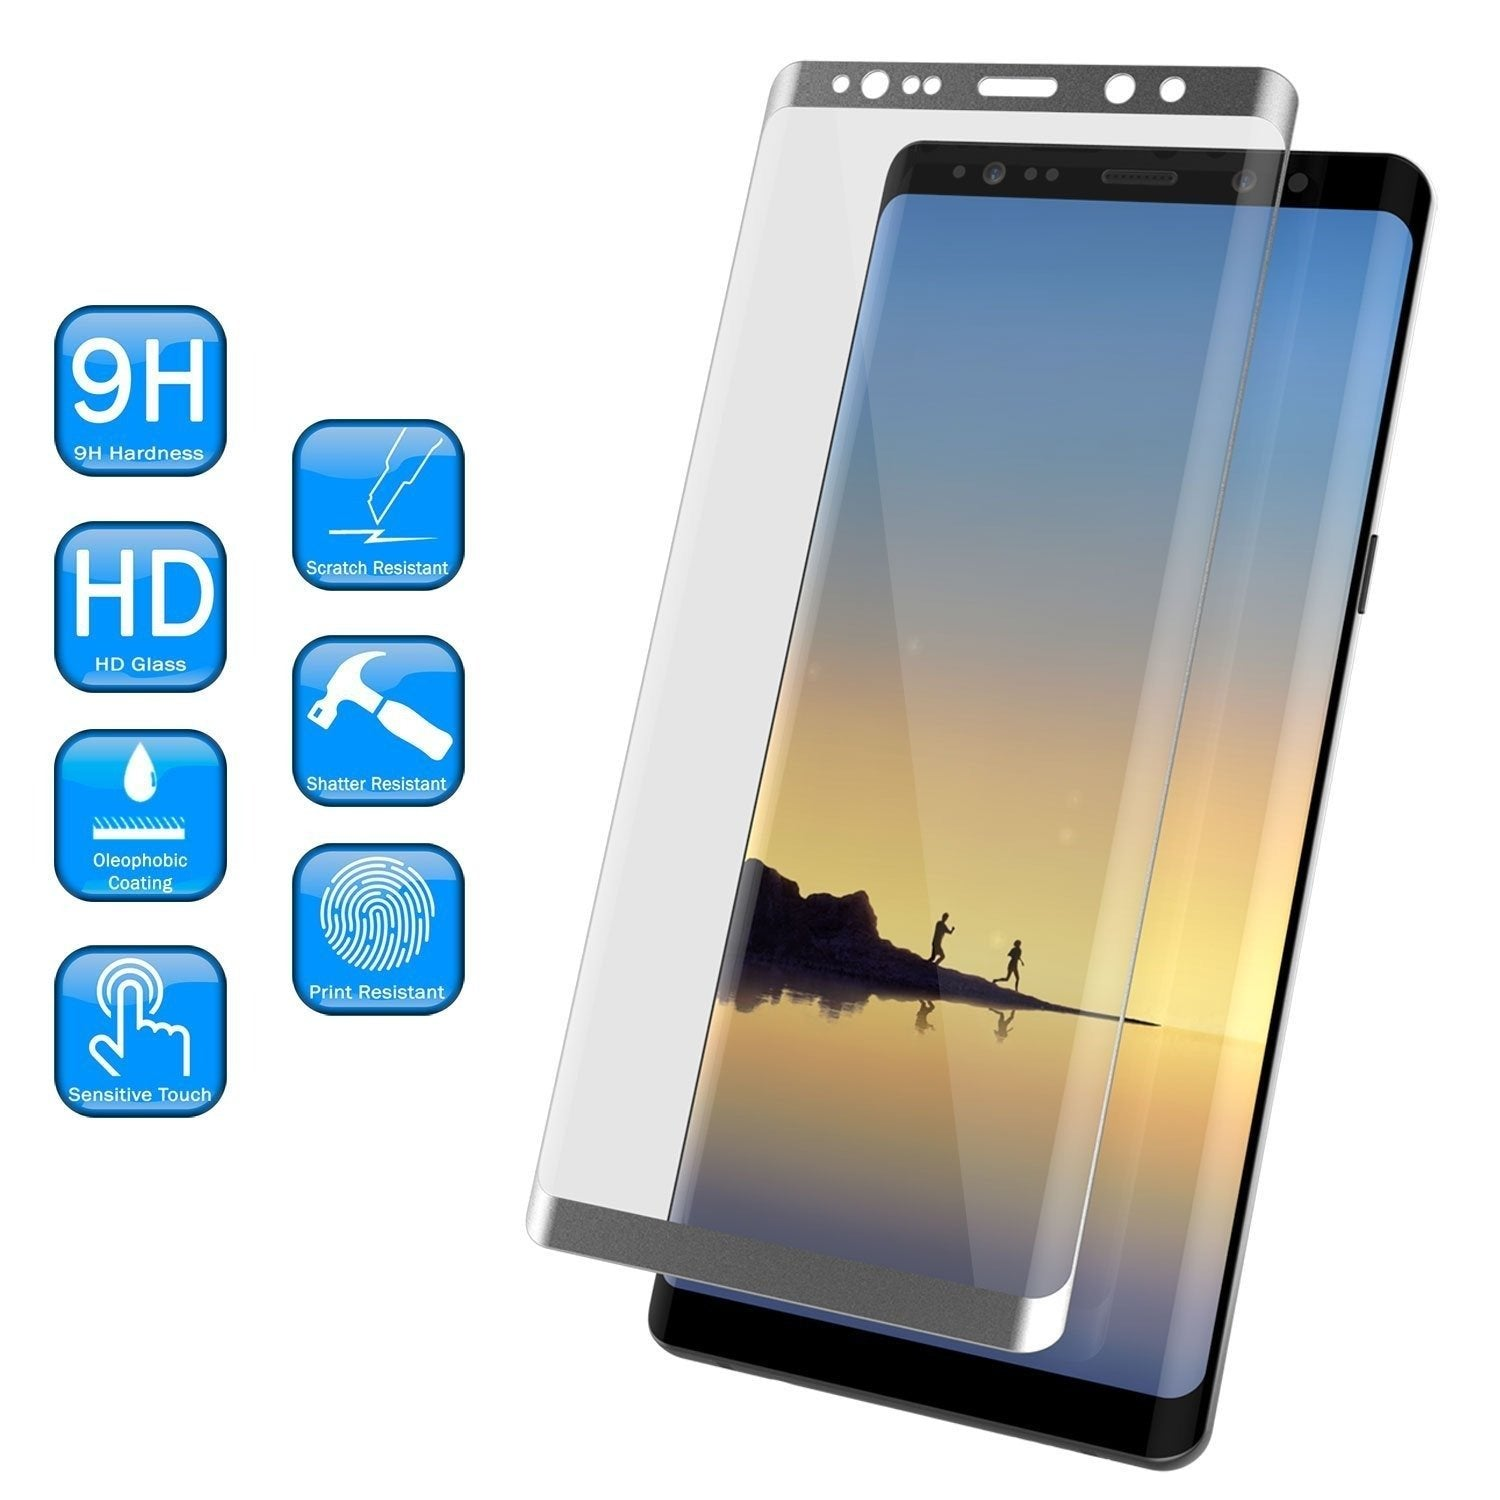 Galaxy Note 20 Black Punkcase Glass SHIELD Tempered Glass Screen Protector 0.33mm Thick 9H Glass